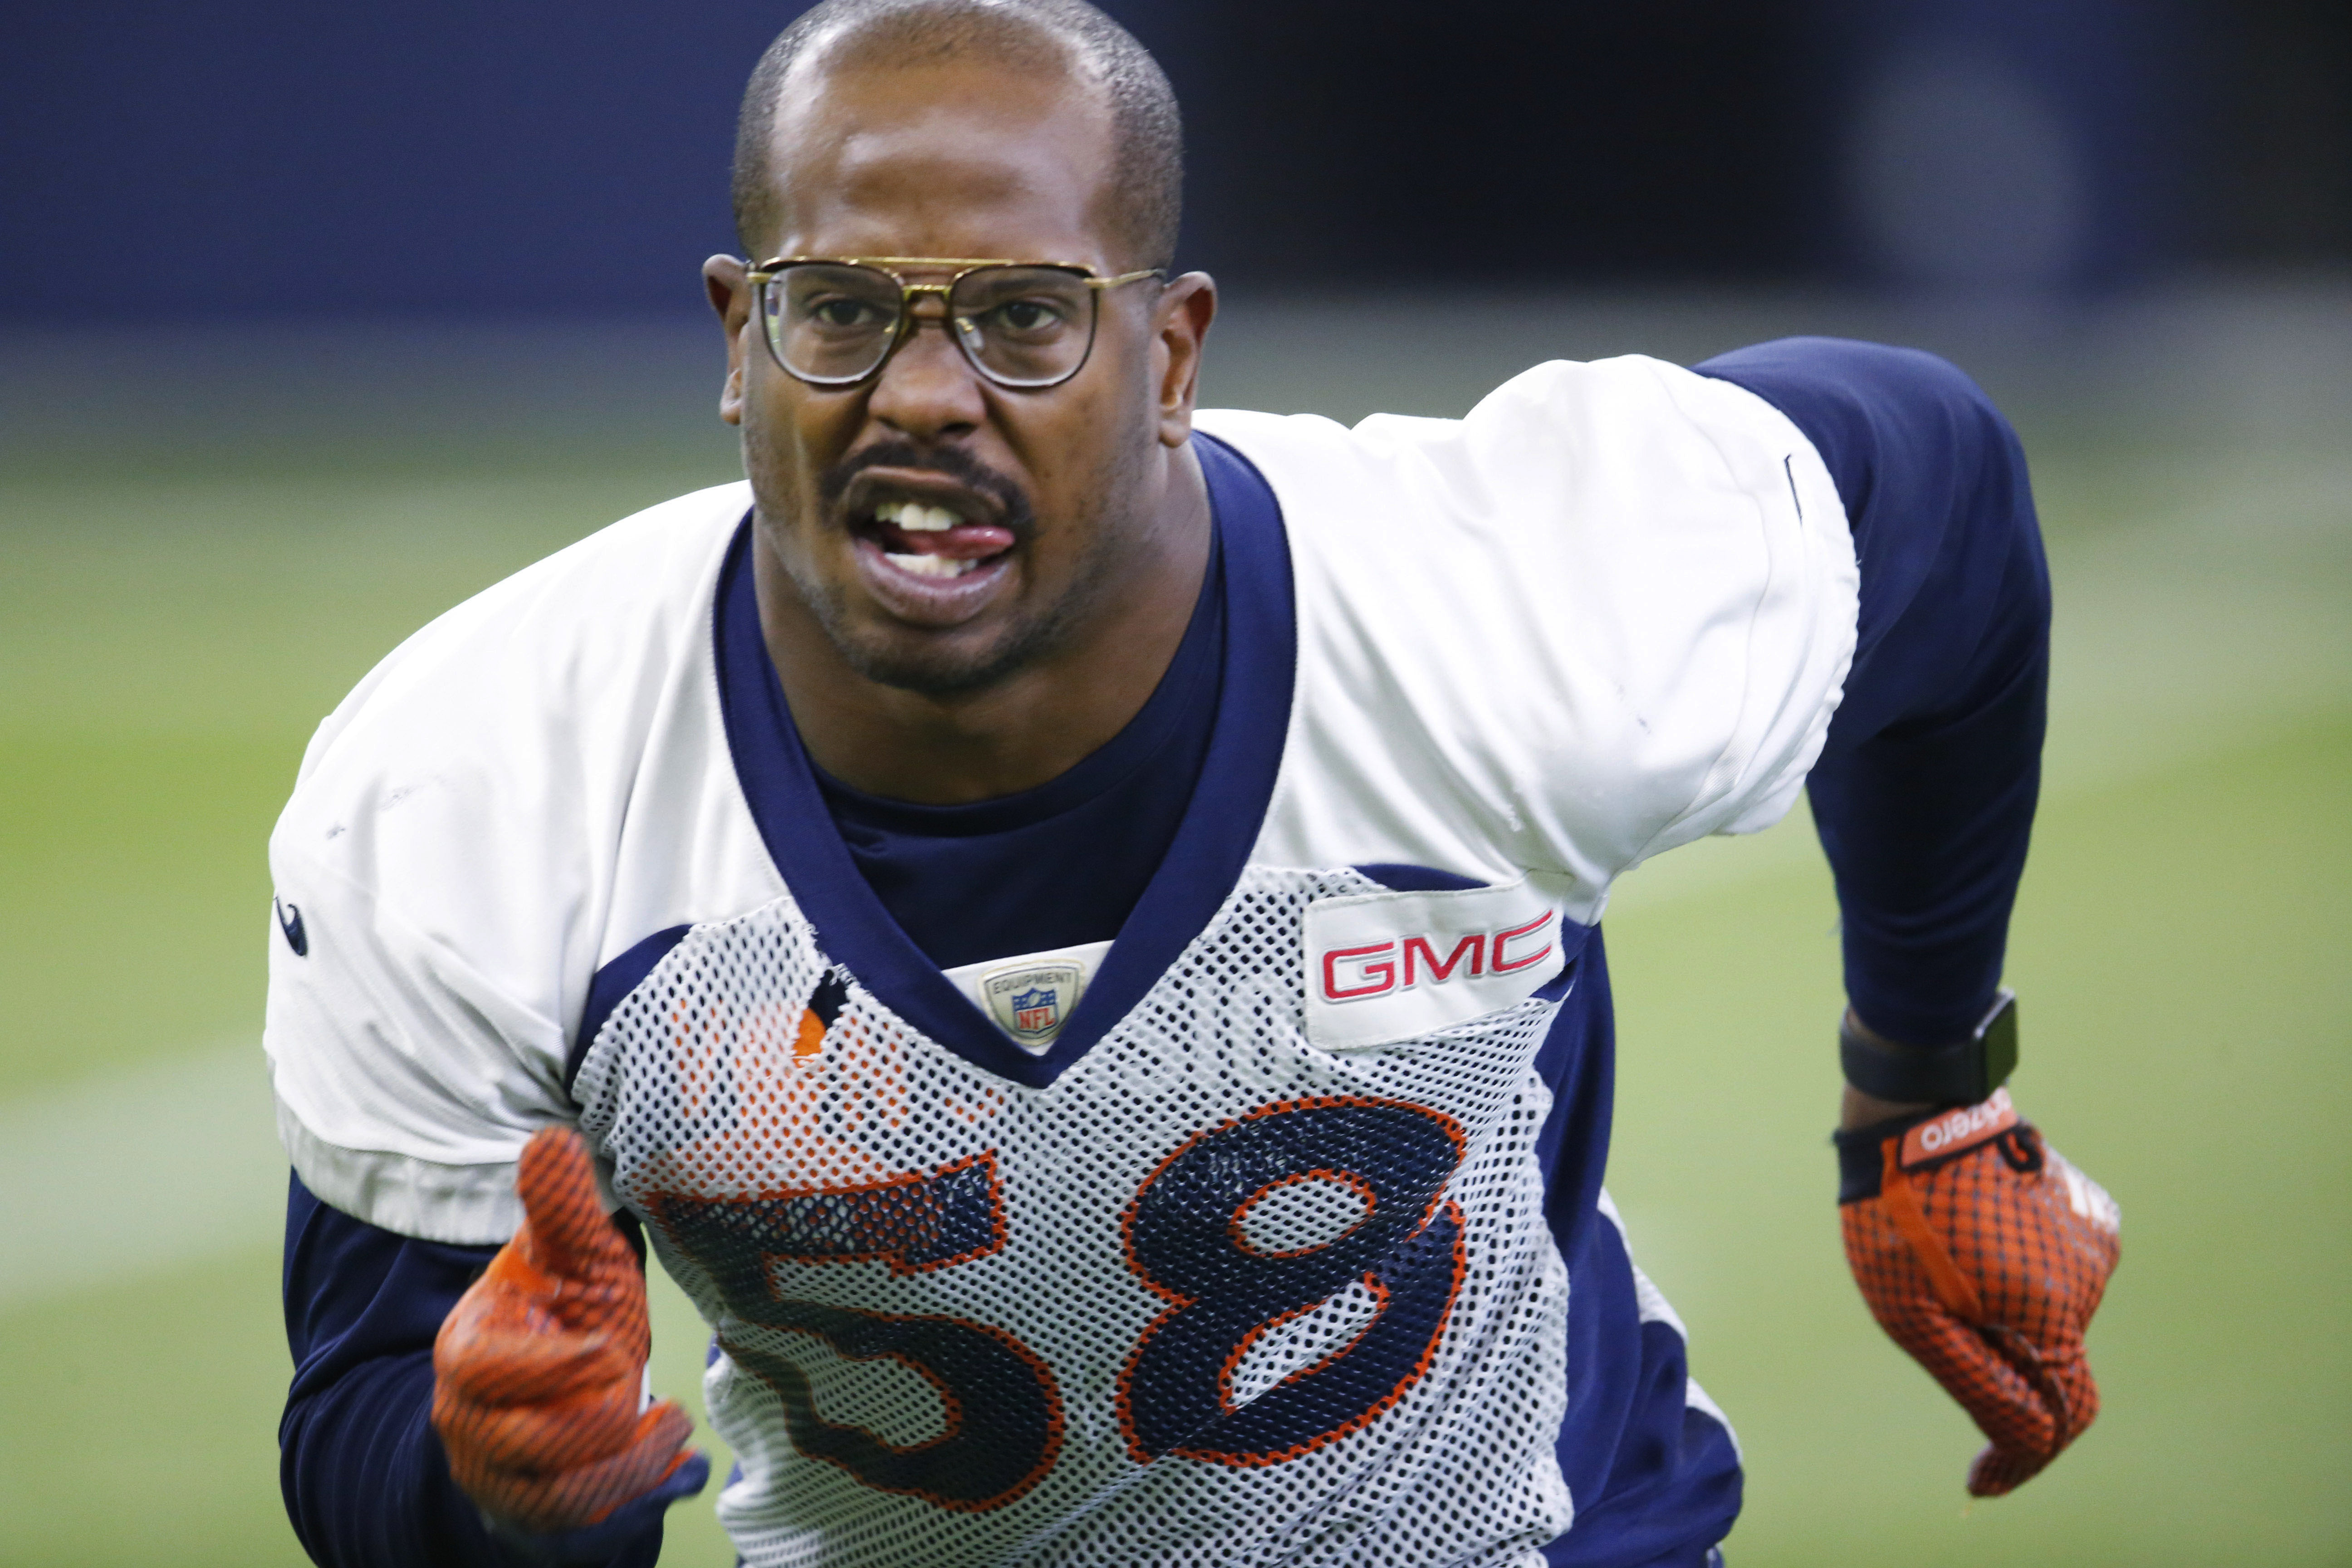 FILE - In this Jan. 7, 2016, file photo, Denver Broncos outside linebacker Von Miller takes part in drill during the team's NFL football practice in Englewood, Colo. Miller returned to practice Thursday, Jan. 14, after suffering from a bout of food poison